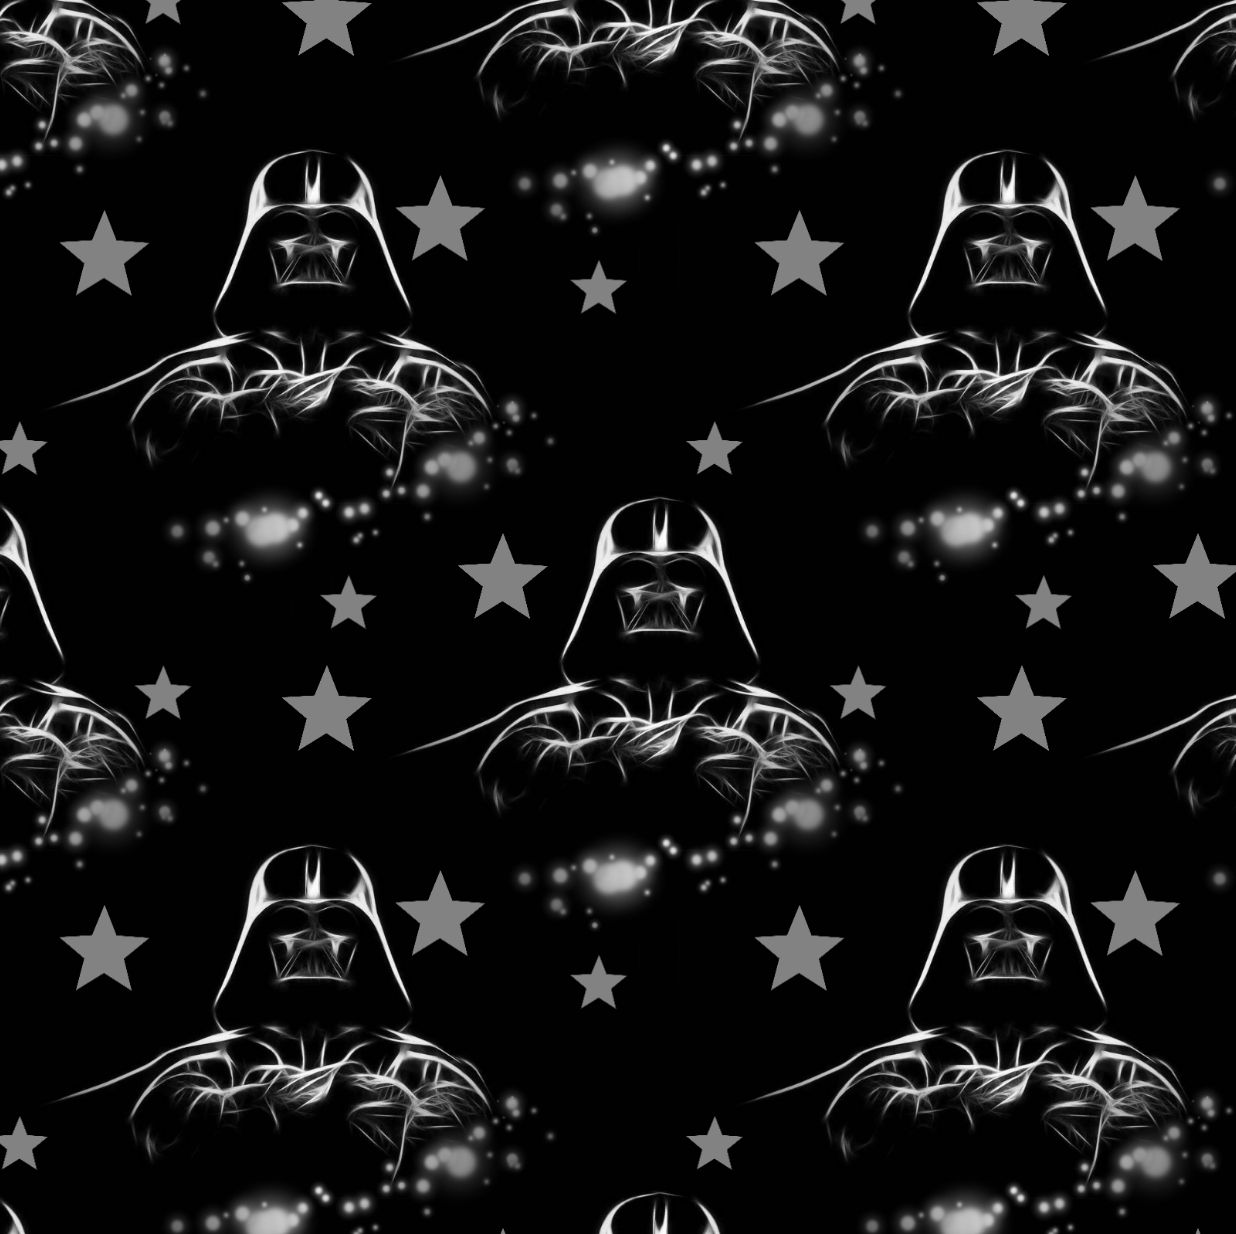 PRE ORDER - Star Wars Darth Vader Head - Digital Fabric Print